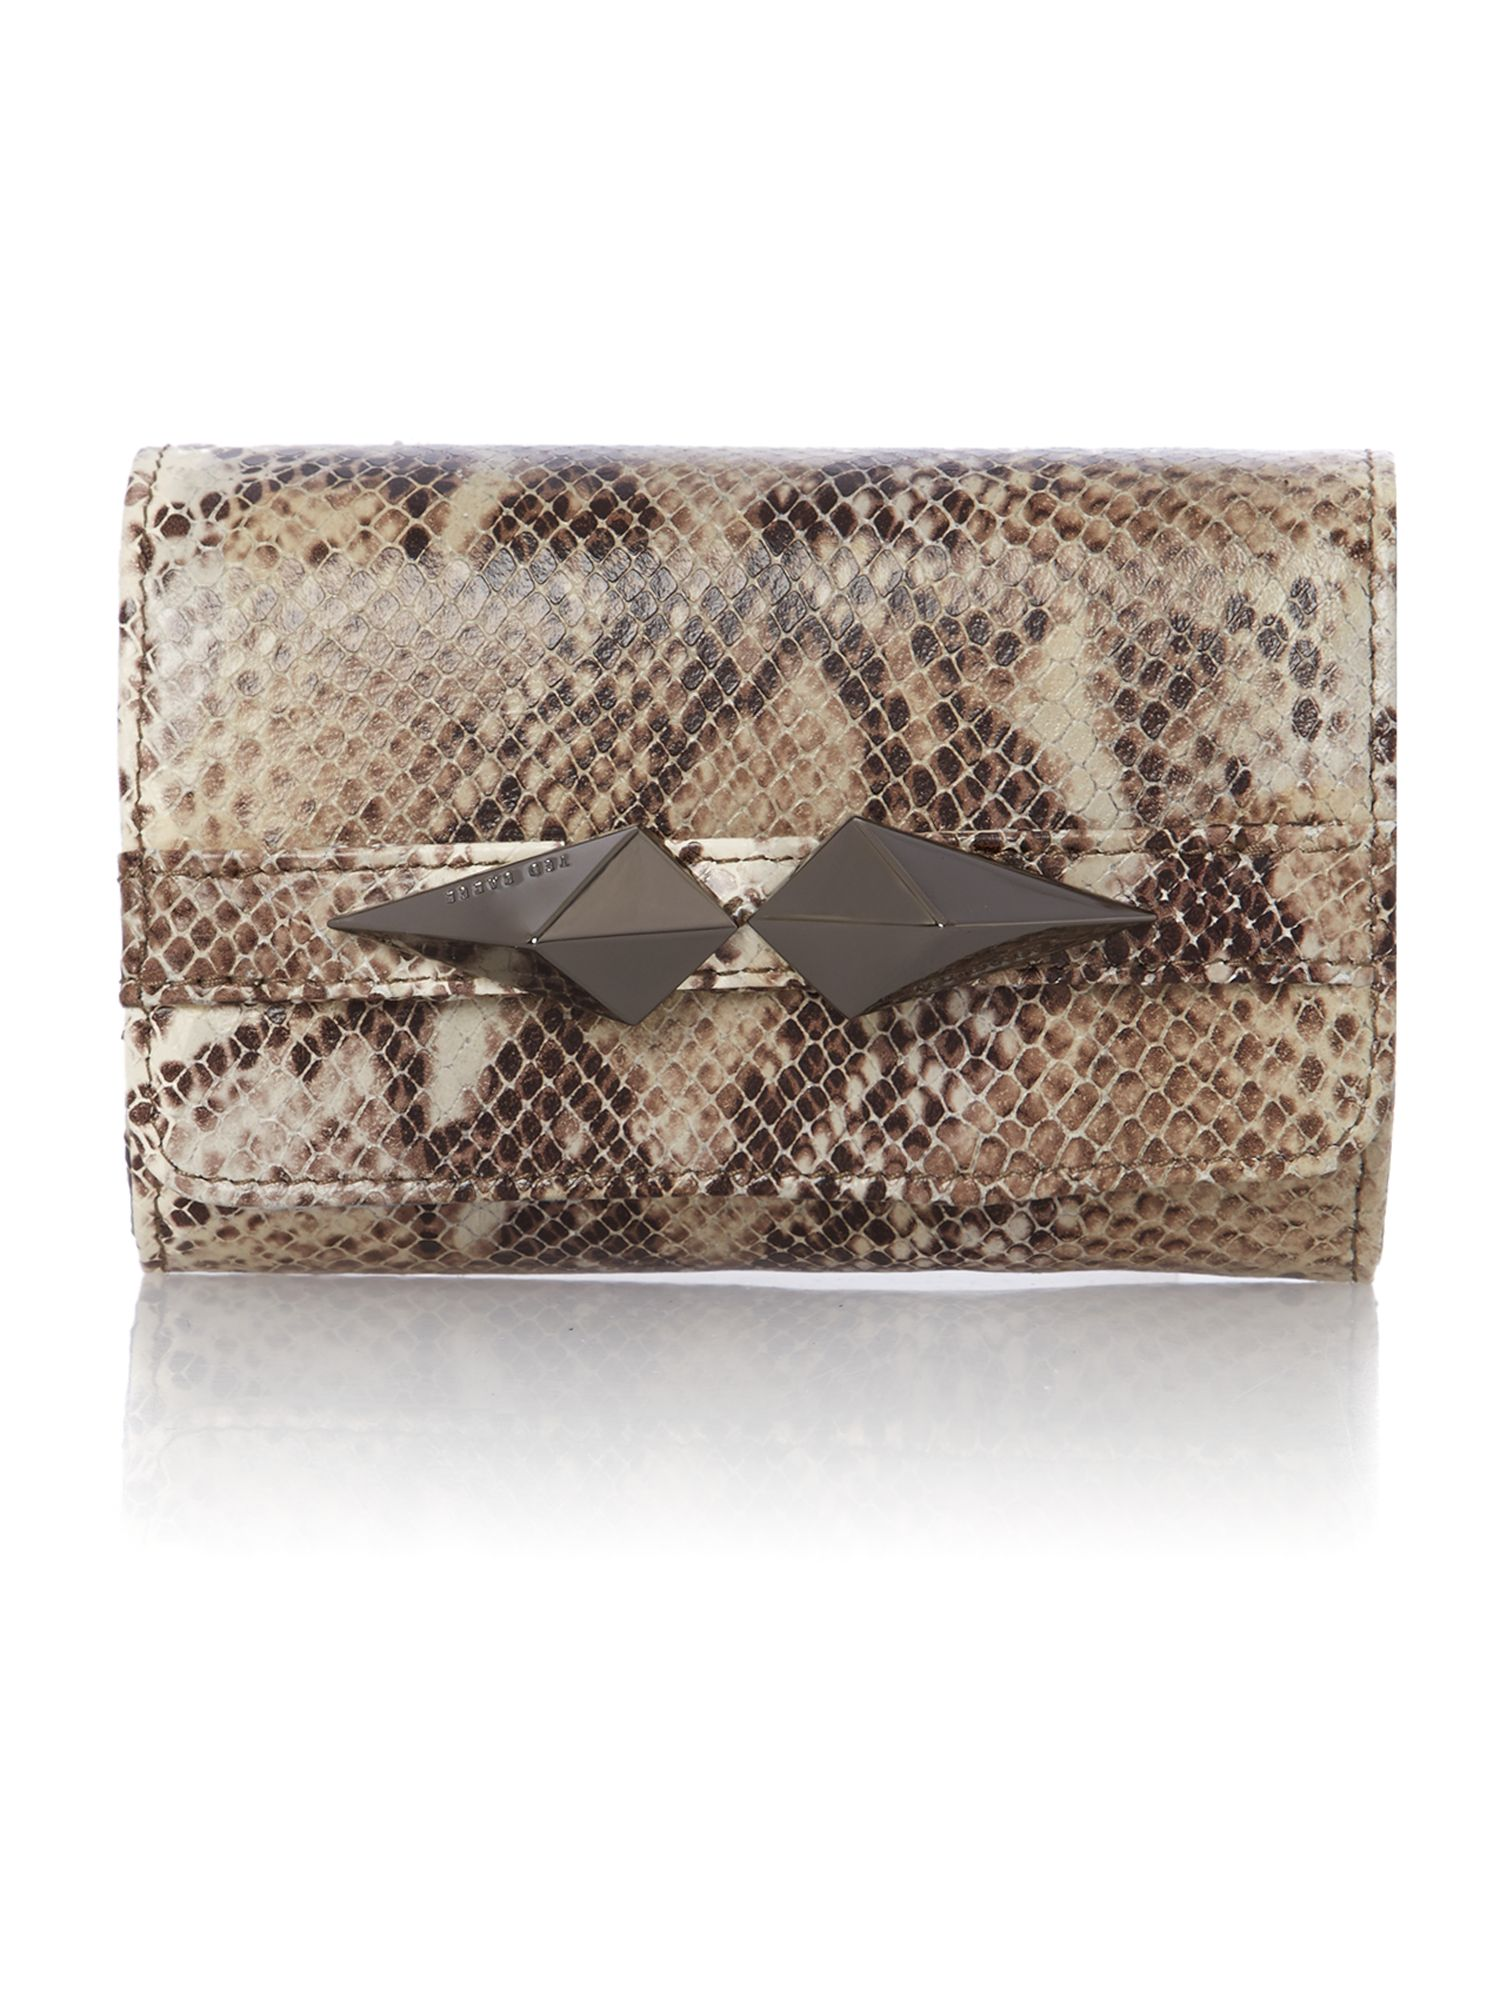 Mini black snake clutch bag